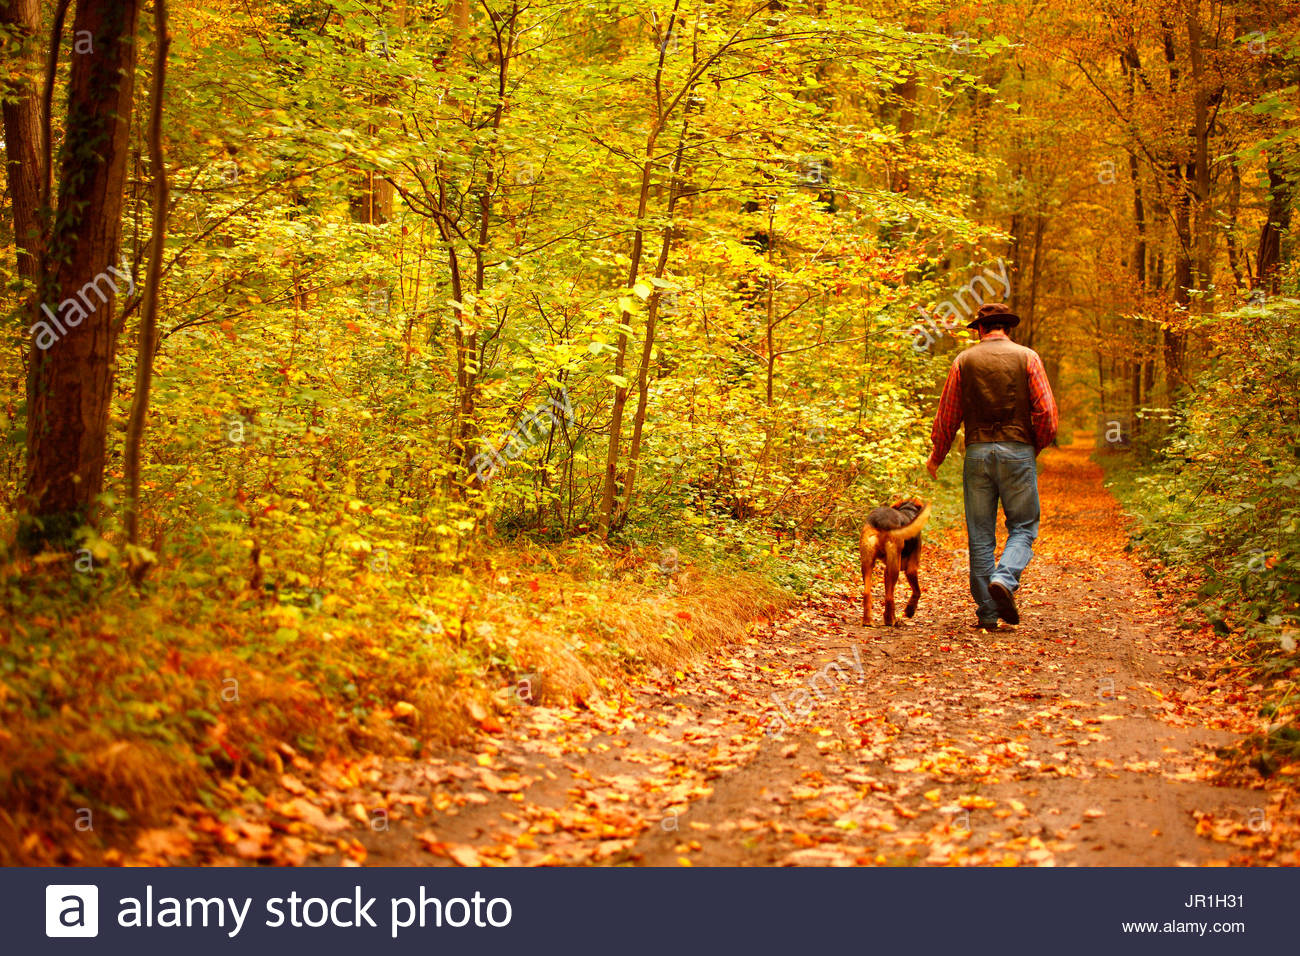 Rambler and his dog in a wood in autumn, October, Picardy, France. - Stock Image